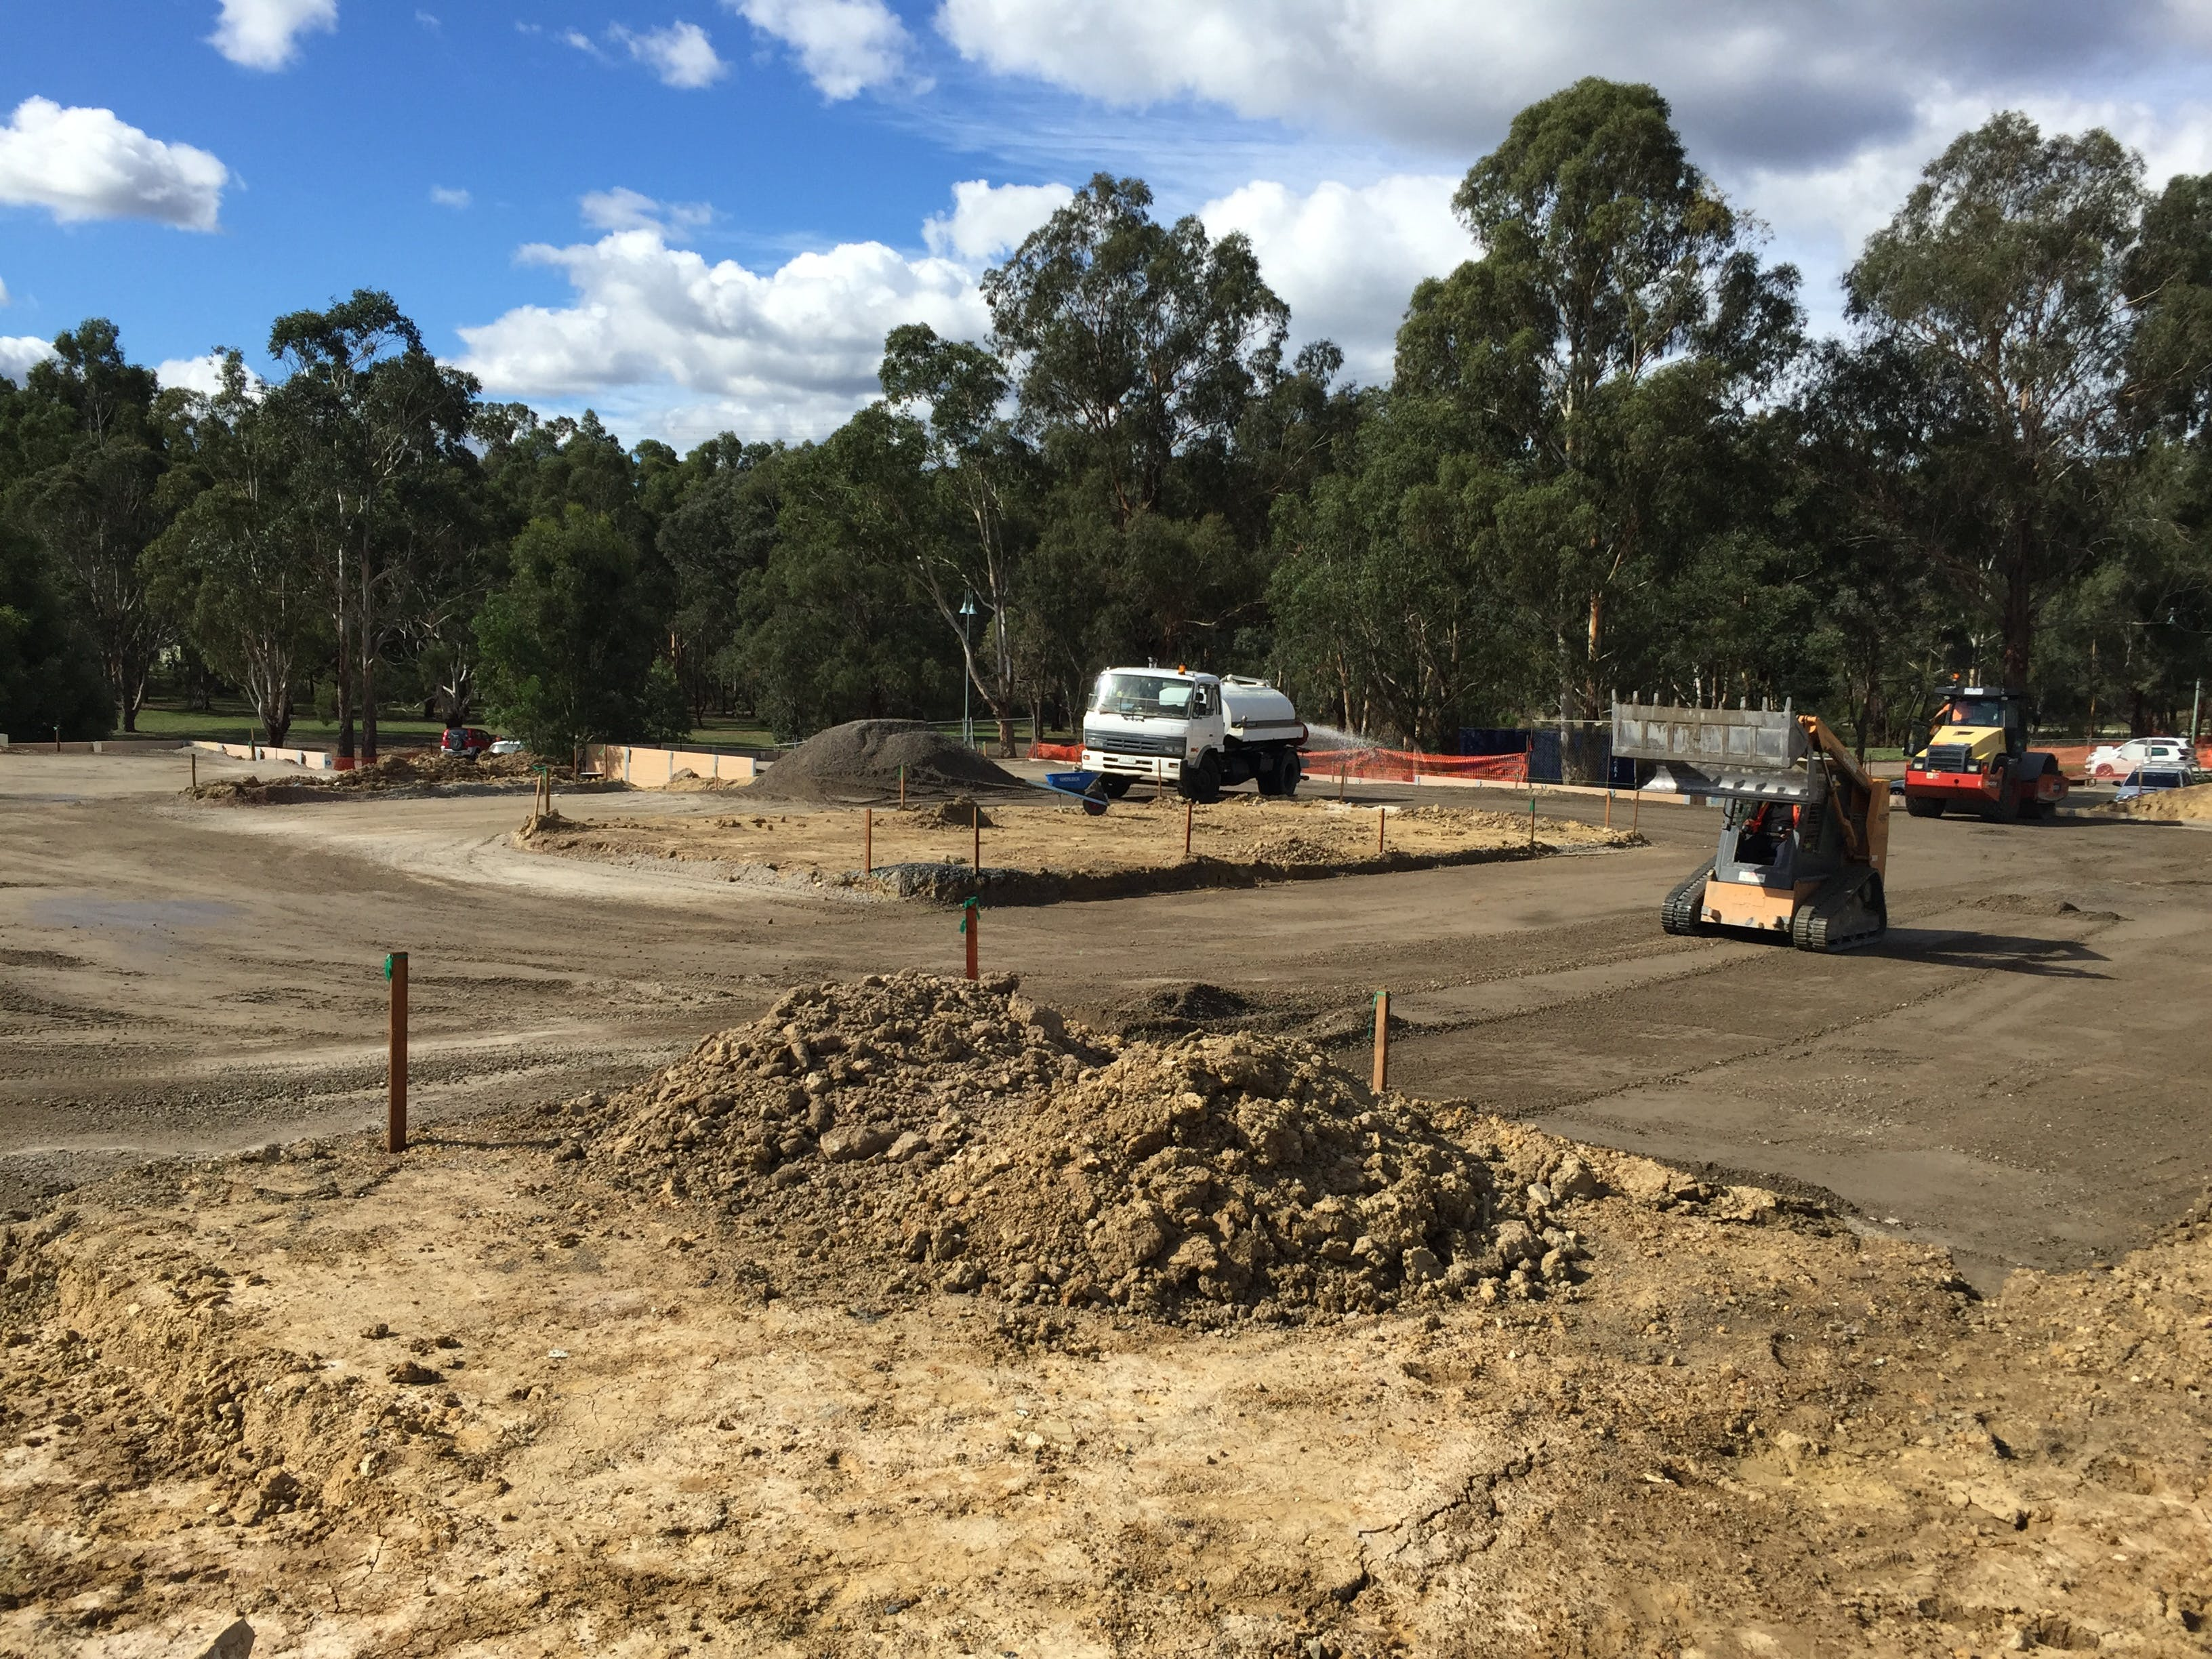 The new car park between the tennis courts and bowling green is taking shape with the construction of road pavement.